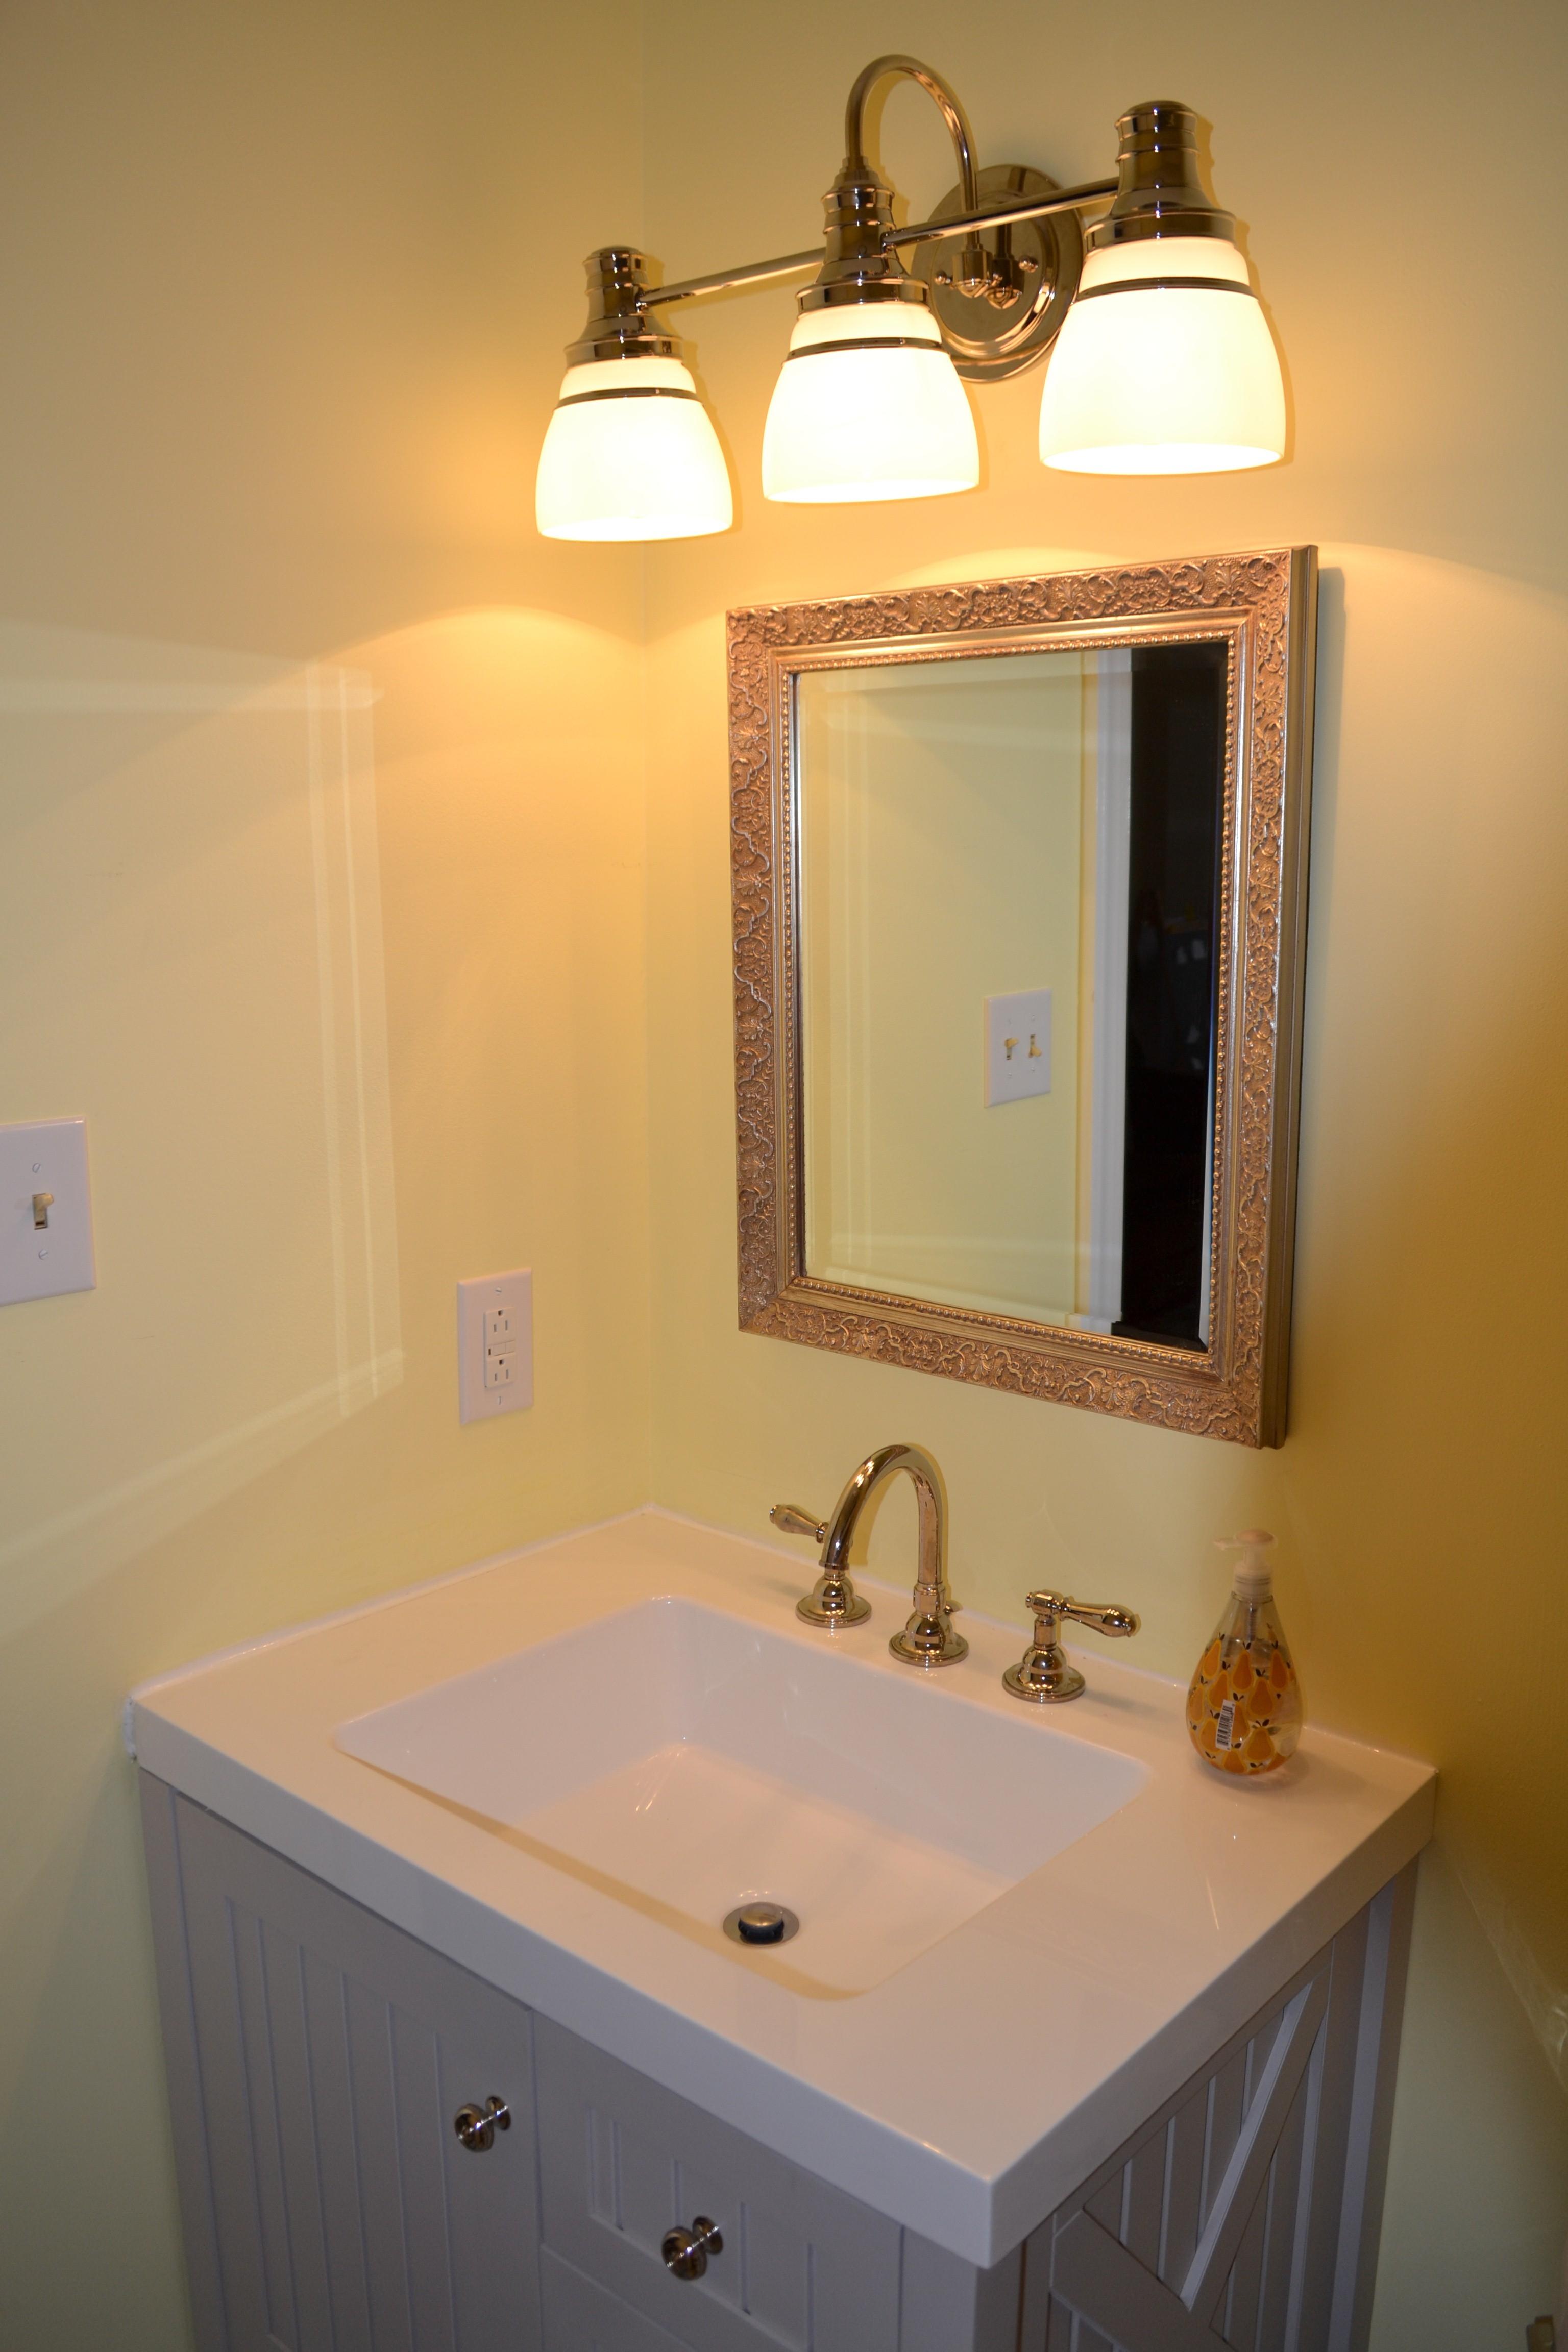 Lighting Flush Mount Lighting Bath Lighting Light Sconces Wall With Regard To Bathroom Lighting With Matching Chandeliers (Image 20 of 25)